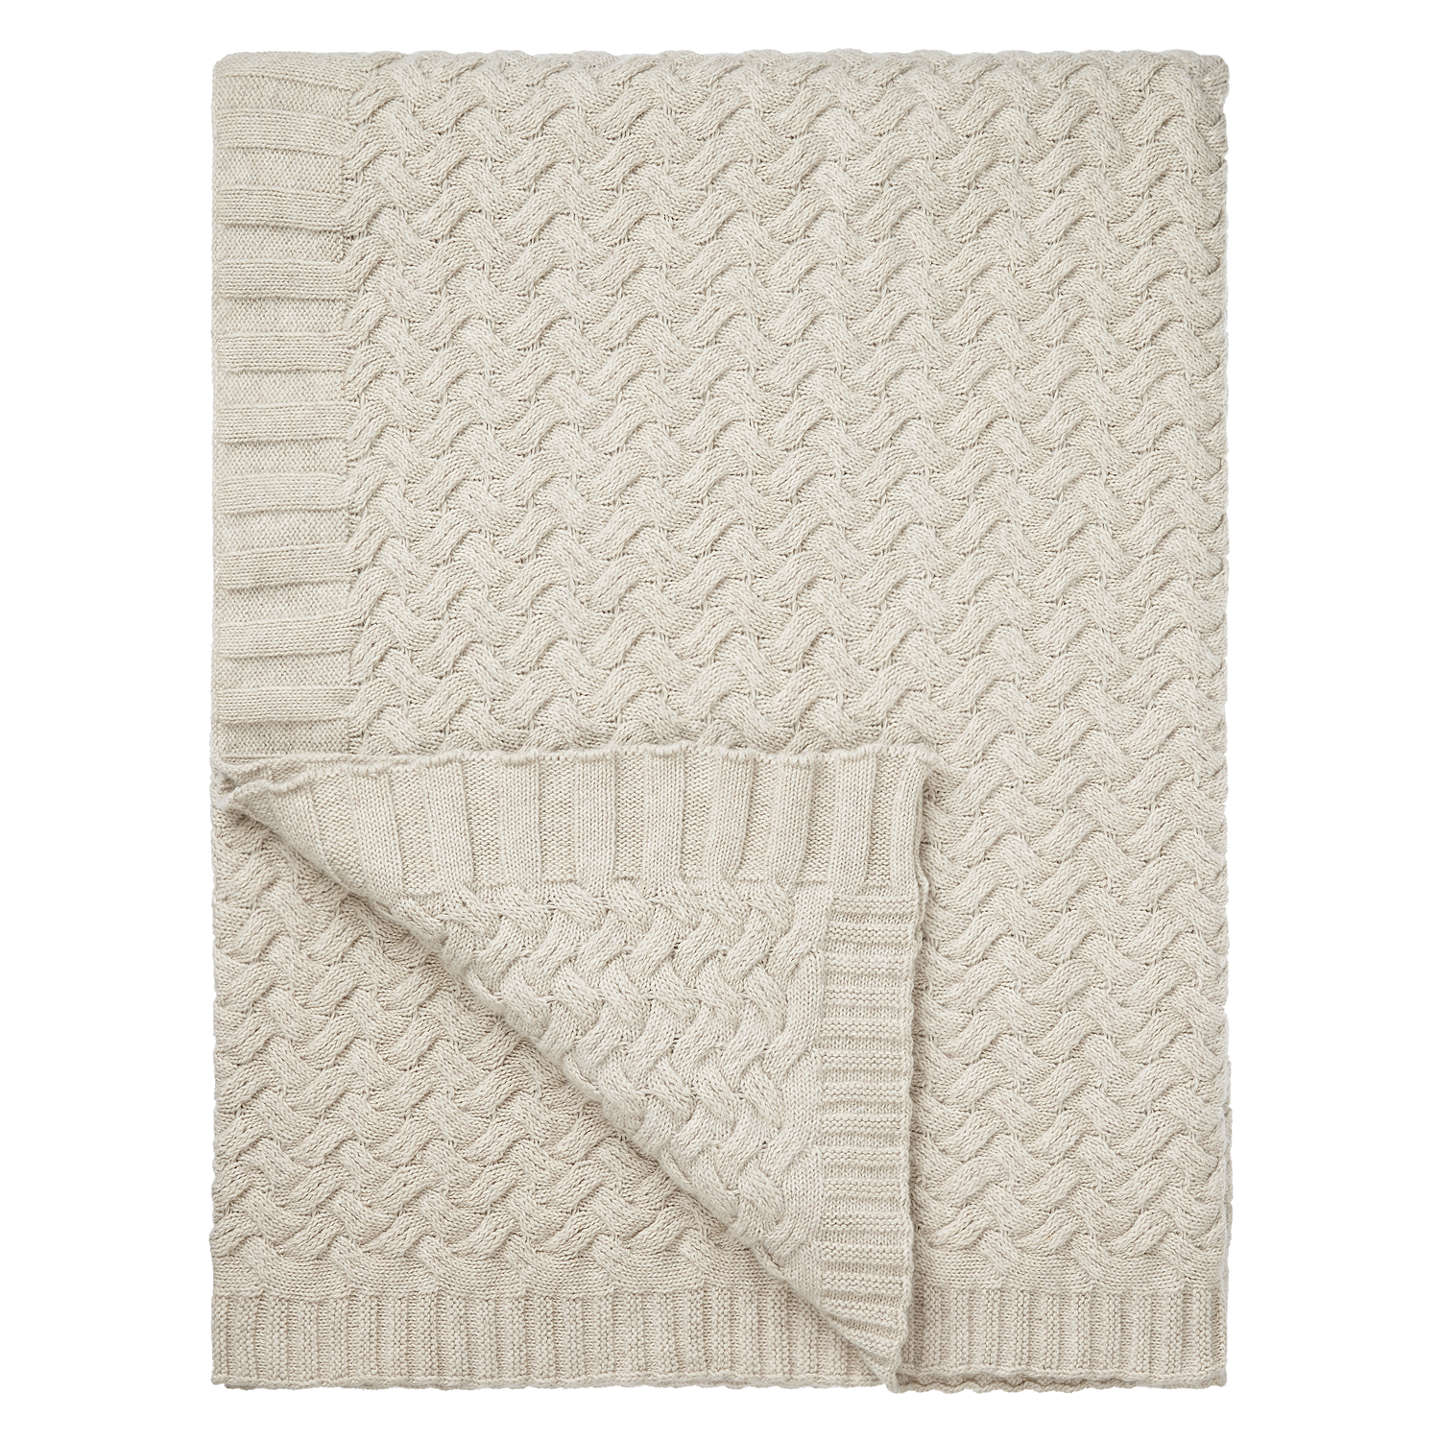 BuyJohn Lewis Knitted Waves Throw, Putty Online at johnlewis.com